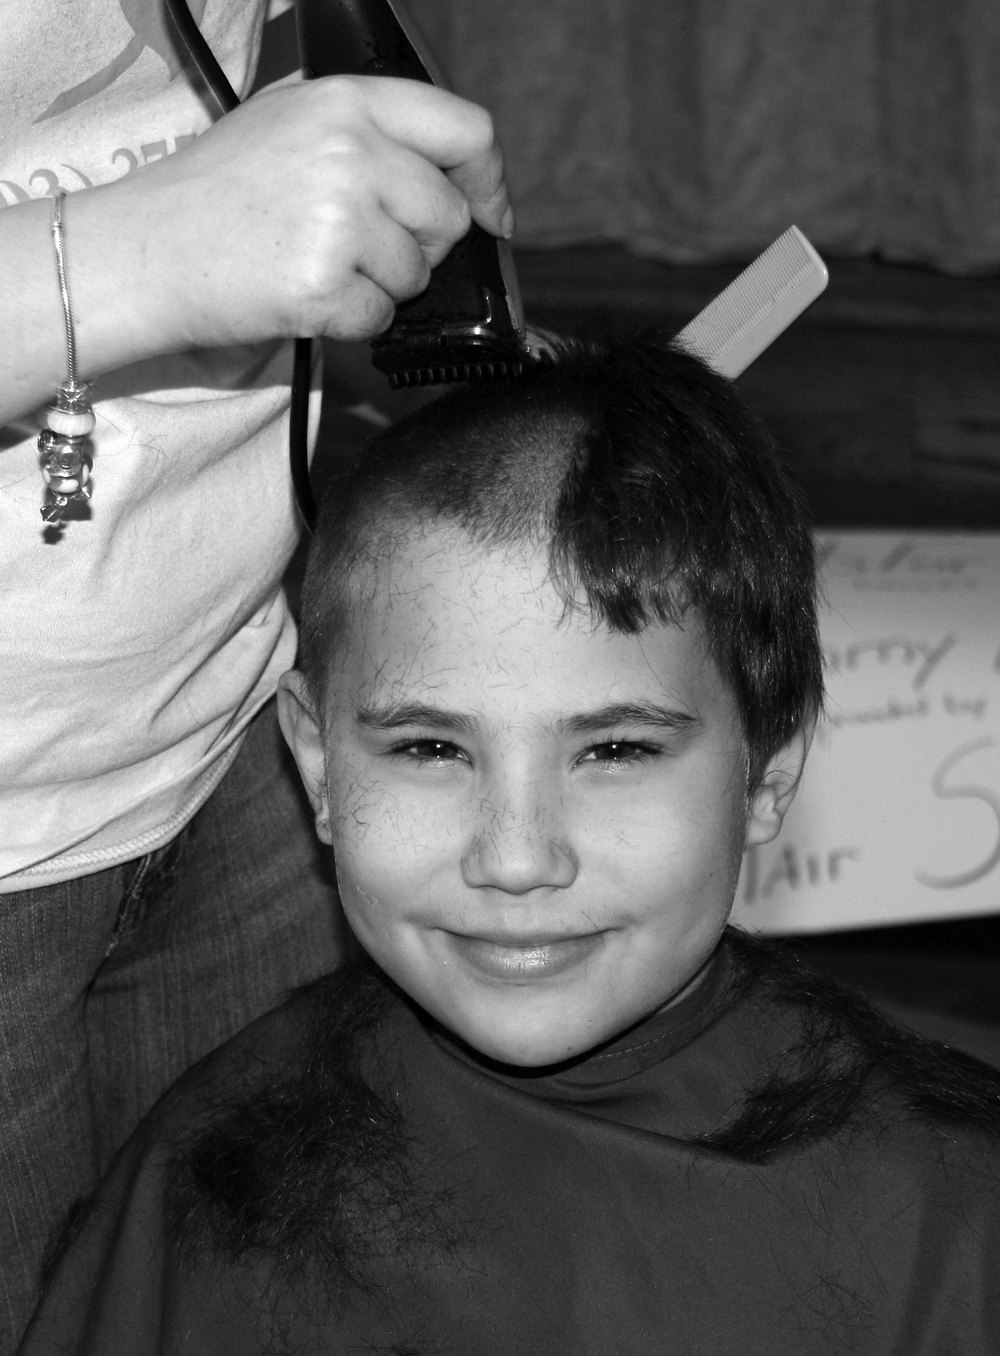 Michael Guasp cuts hair for a good cause — with a smile. Below: Schoolmate Leila Mellen offers up her pigtails as well.